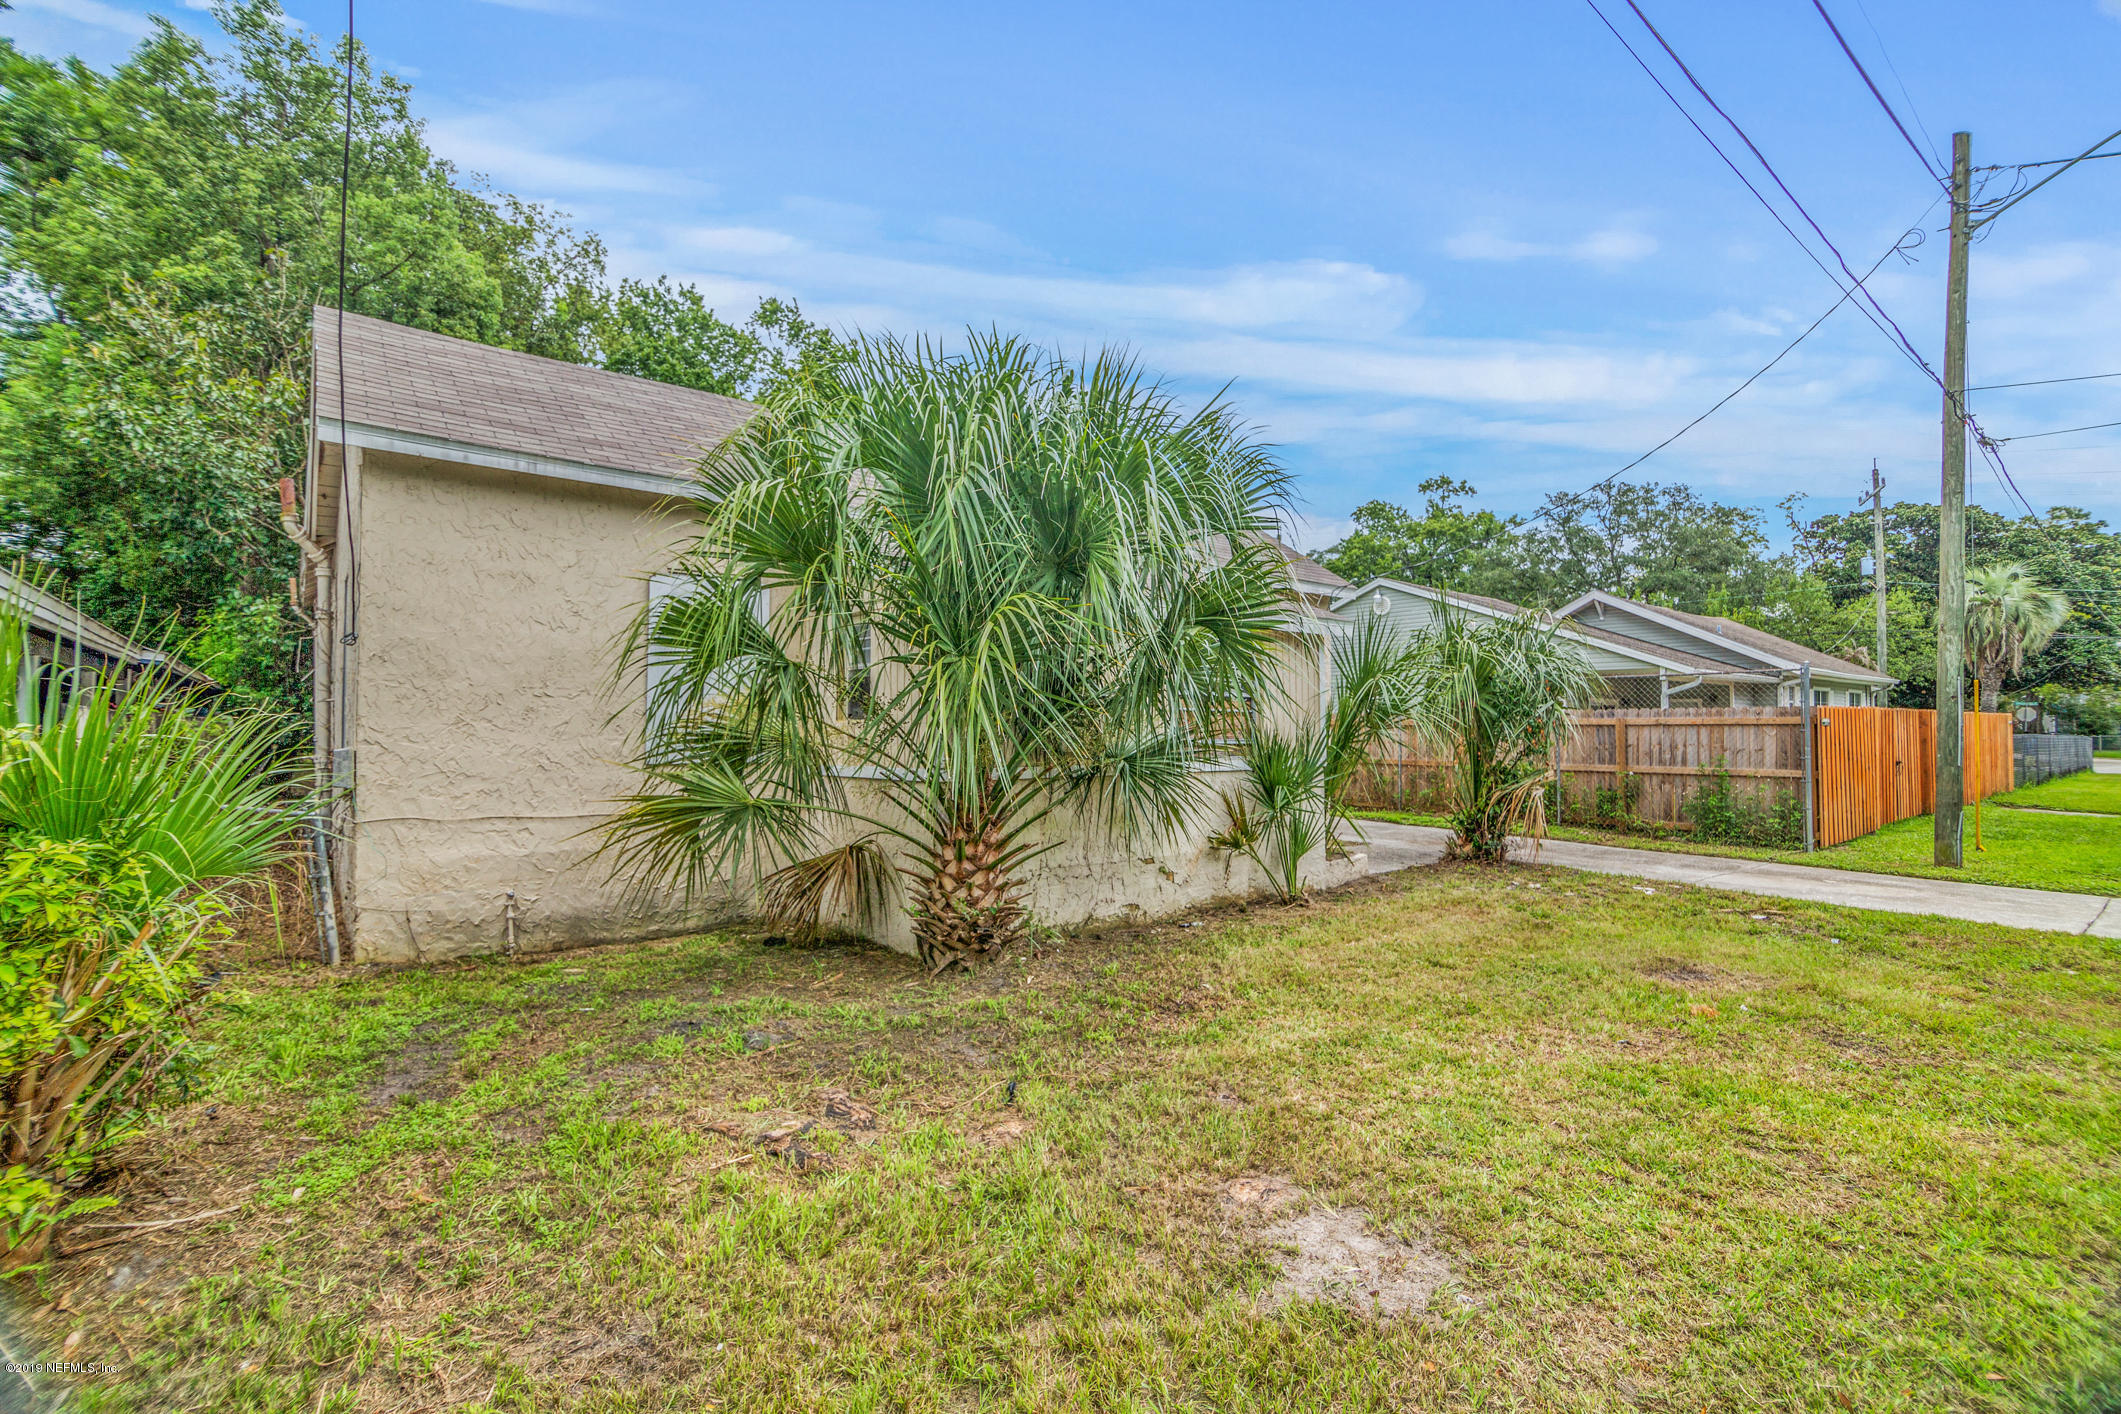 2425 VERNON, JACKSONVILLE, FLORIDA 32209, 3 Bedrooms Bedrooms, ,1 BathroomBathrooms,Residential - single family,For sale,VERNON,1008269